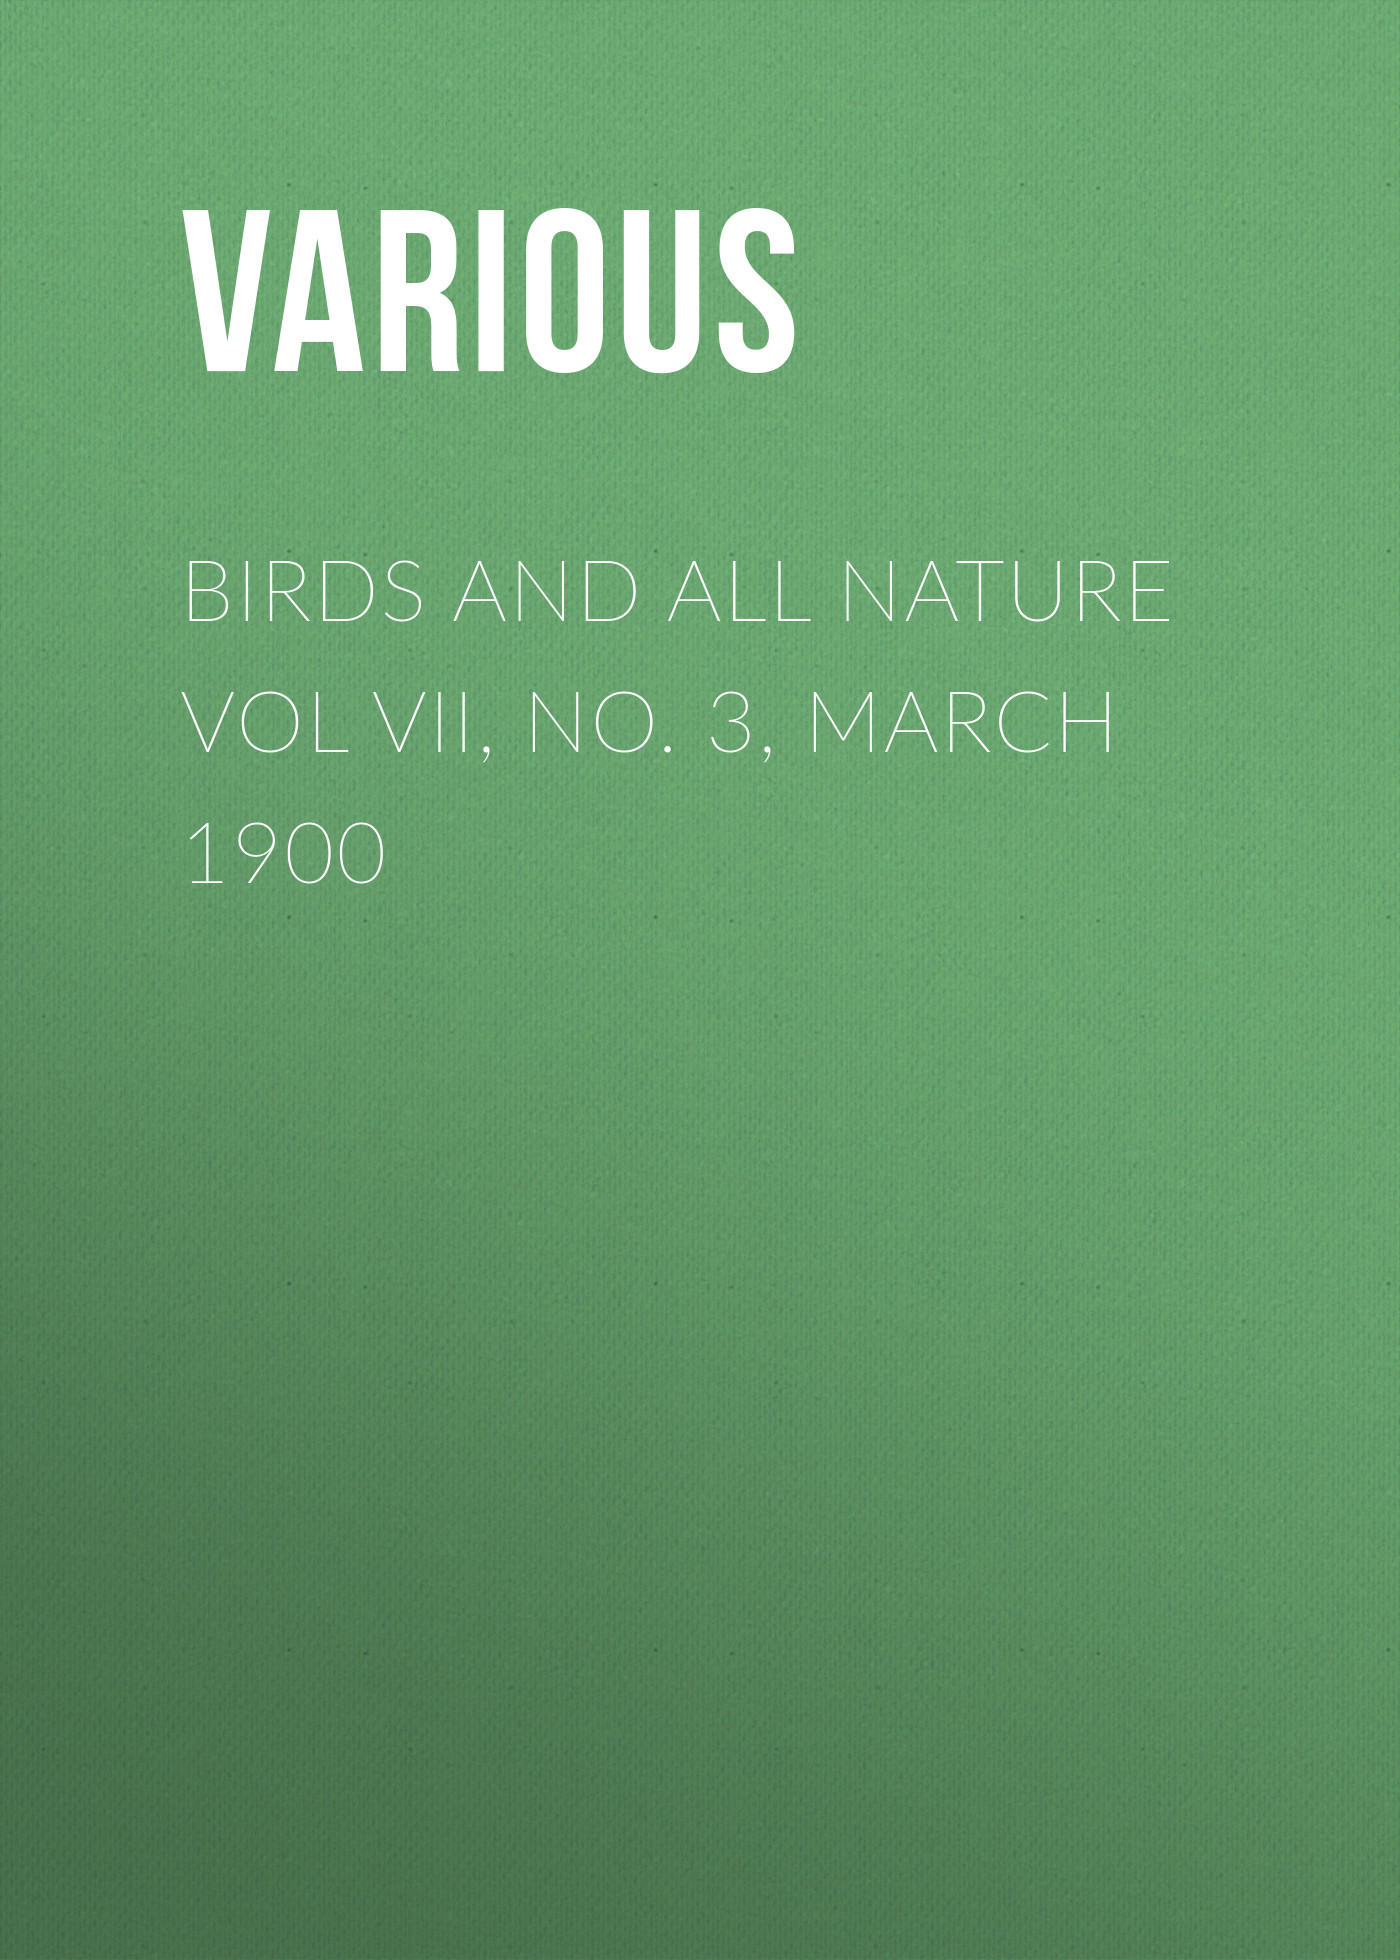 Various Birds and all Nature Vol VII, No. 3, March 1900 various birds and nature vol viii no 4 november 1900